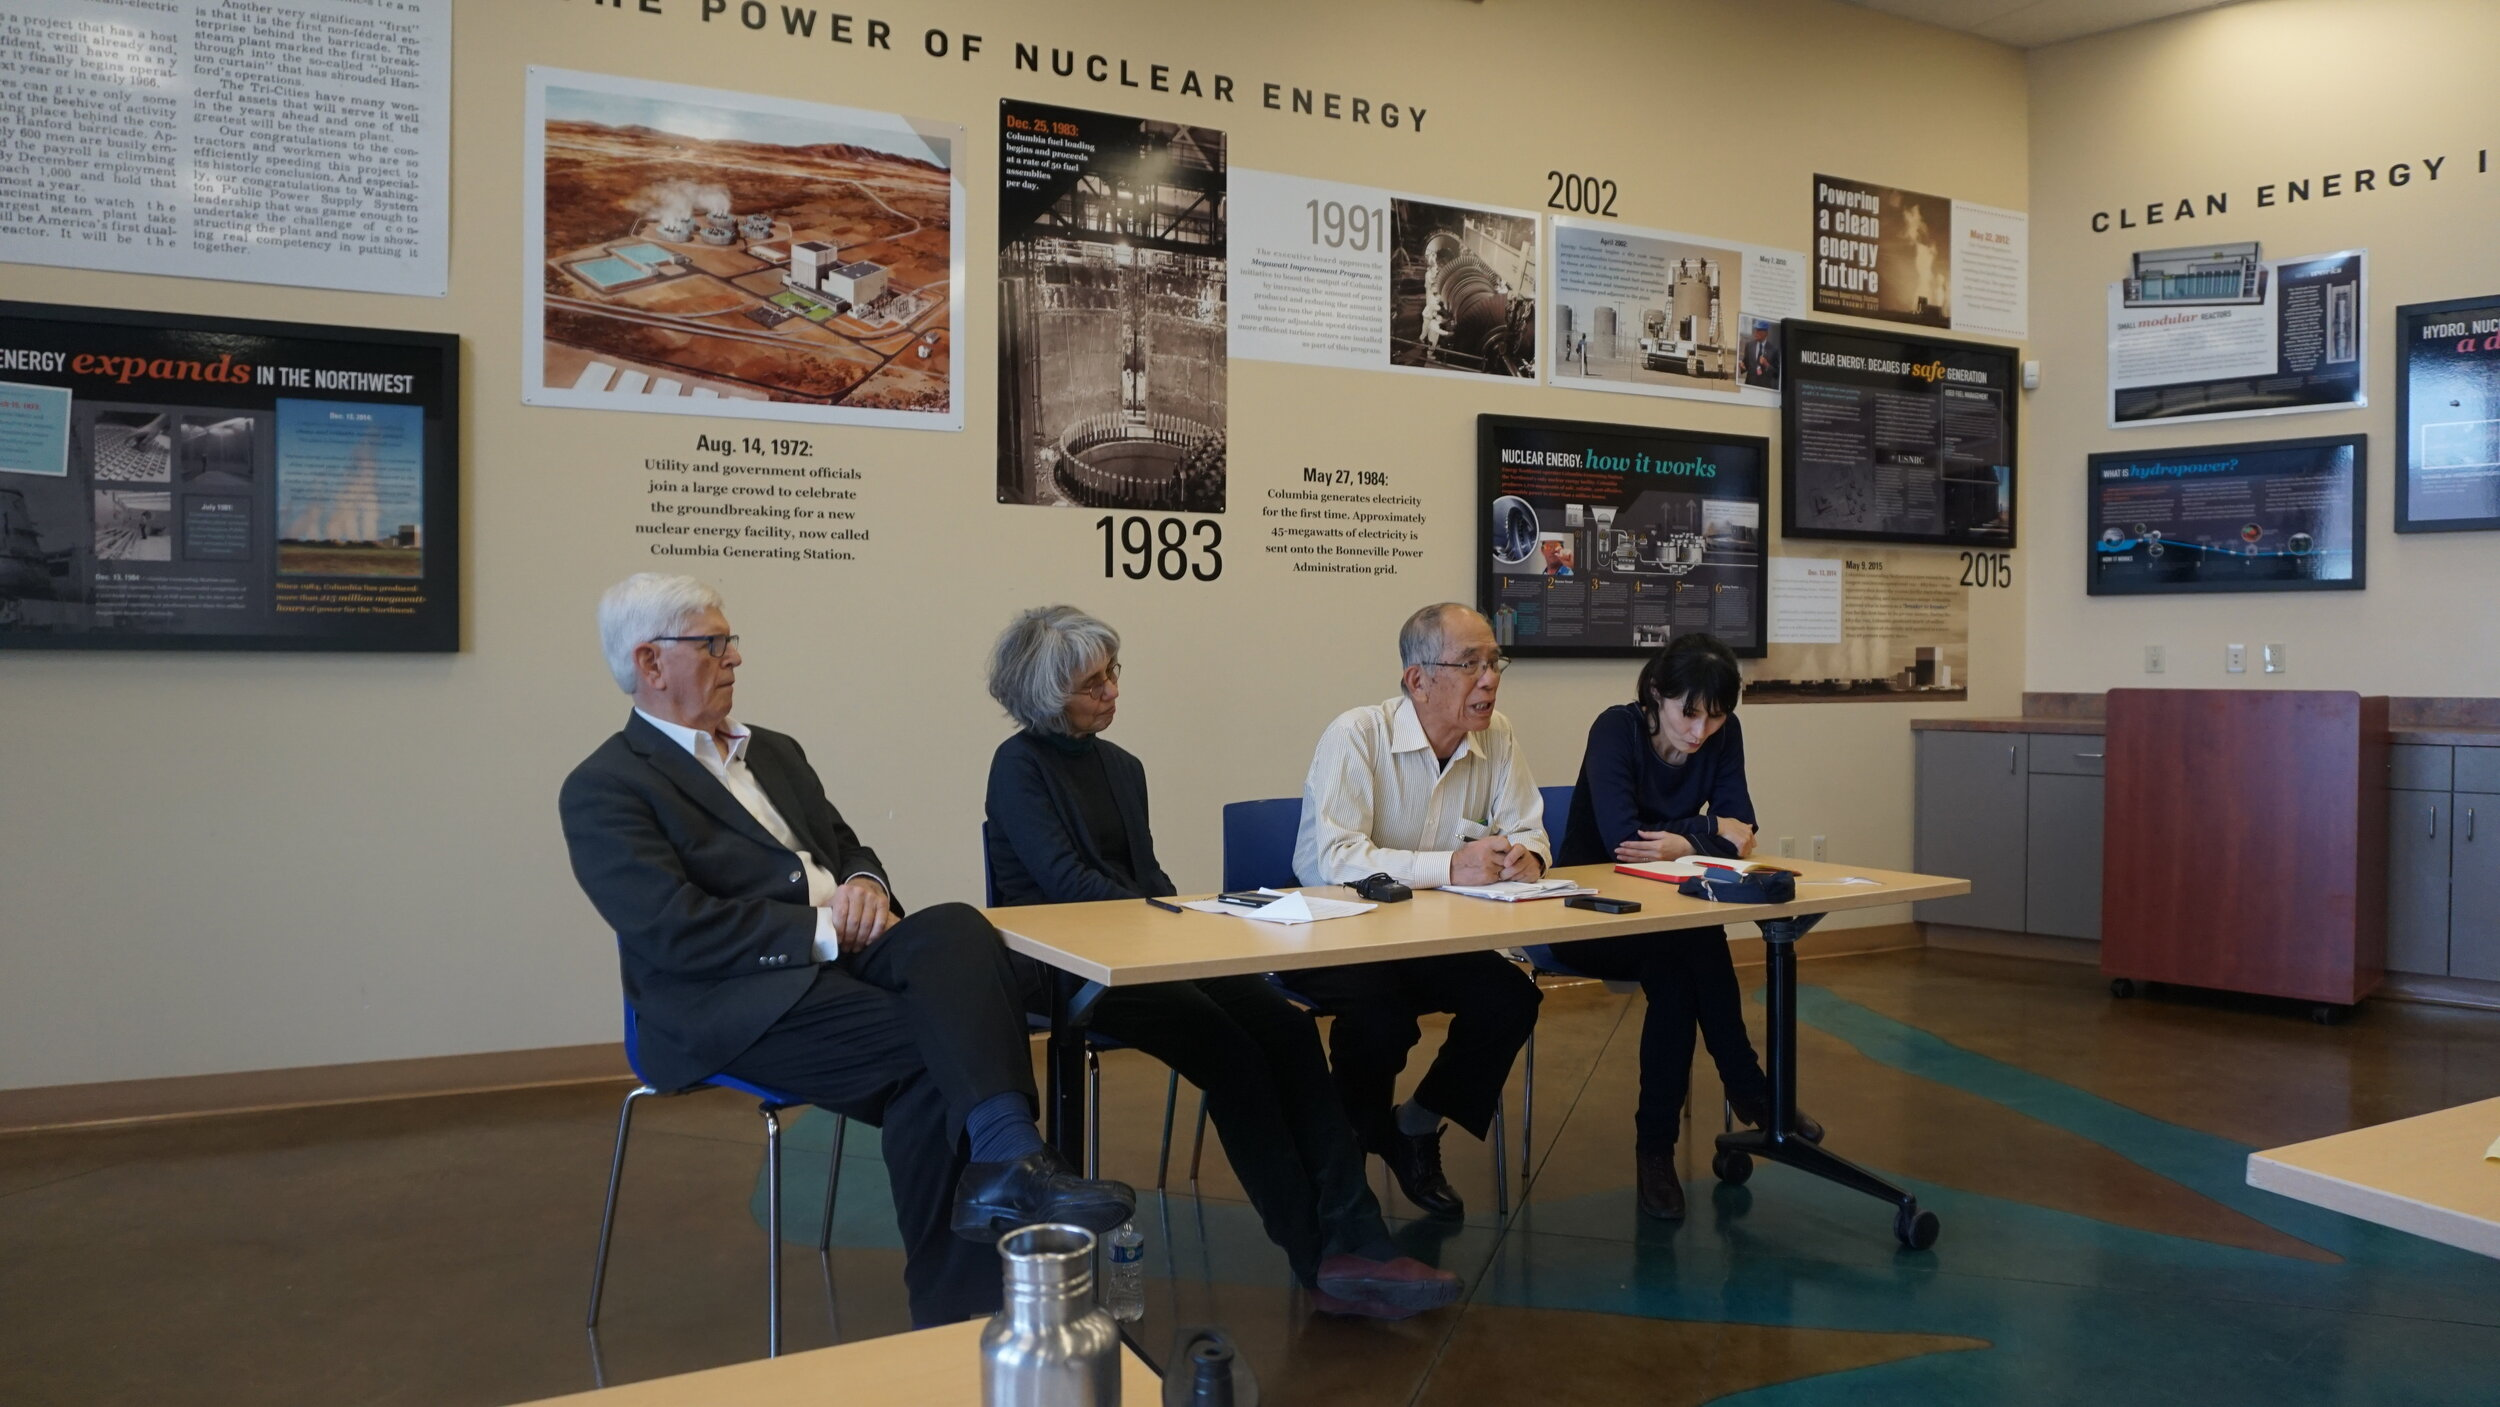 """Hanford downwinder activist Tom Bailie, Dr. Norma Field, Nagasaki hibakusha (atomic bomb survivor) and activist Mitsugi Moriguchi, and Dr. Yuki Miyamoto, Richland 2018. These extraordinary activists and nuclear scholars were part of the historic Hanford-Nagasaki Bridge event, organized by the group  Consequences of Radiation Exposure  (CORE) and held in the Tri-Cities near the Hanford site in 2018.  Learn more:   """"Nagasaki Survivor Visits Hanford, Finds Some of the Story Still Untold""""    https://www.pbs.org/video/a-nagasaki-survivor-visits-hanford-gepzqn/.   Dr. Field is the editor and co-translator of  Fukishima: Will you Still Say No Crime Has Been Committed . Read one of her recent works  here .   Dr. Miyamoto  is the author of  Beyond the Mushroom Cloud: Commemoration, Religion, and Responsibility after Hiroshima."""